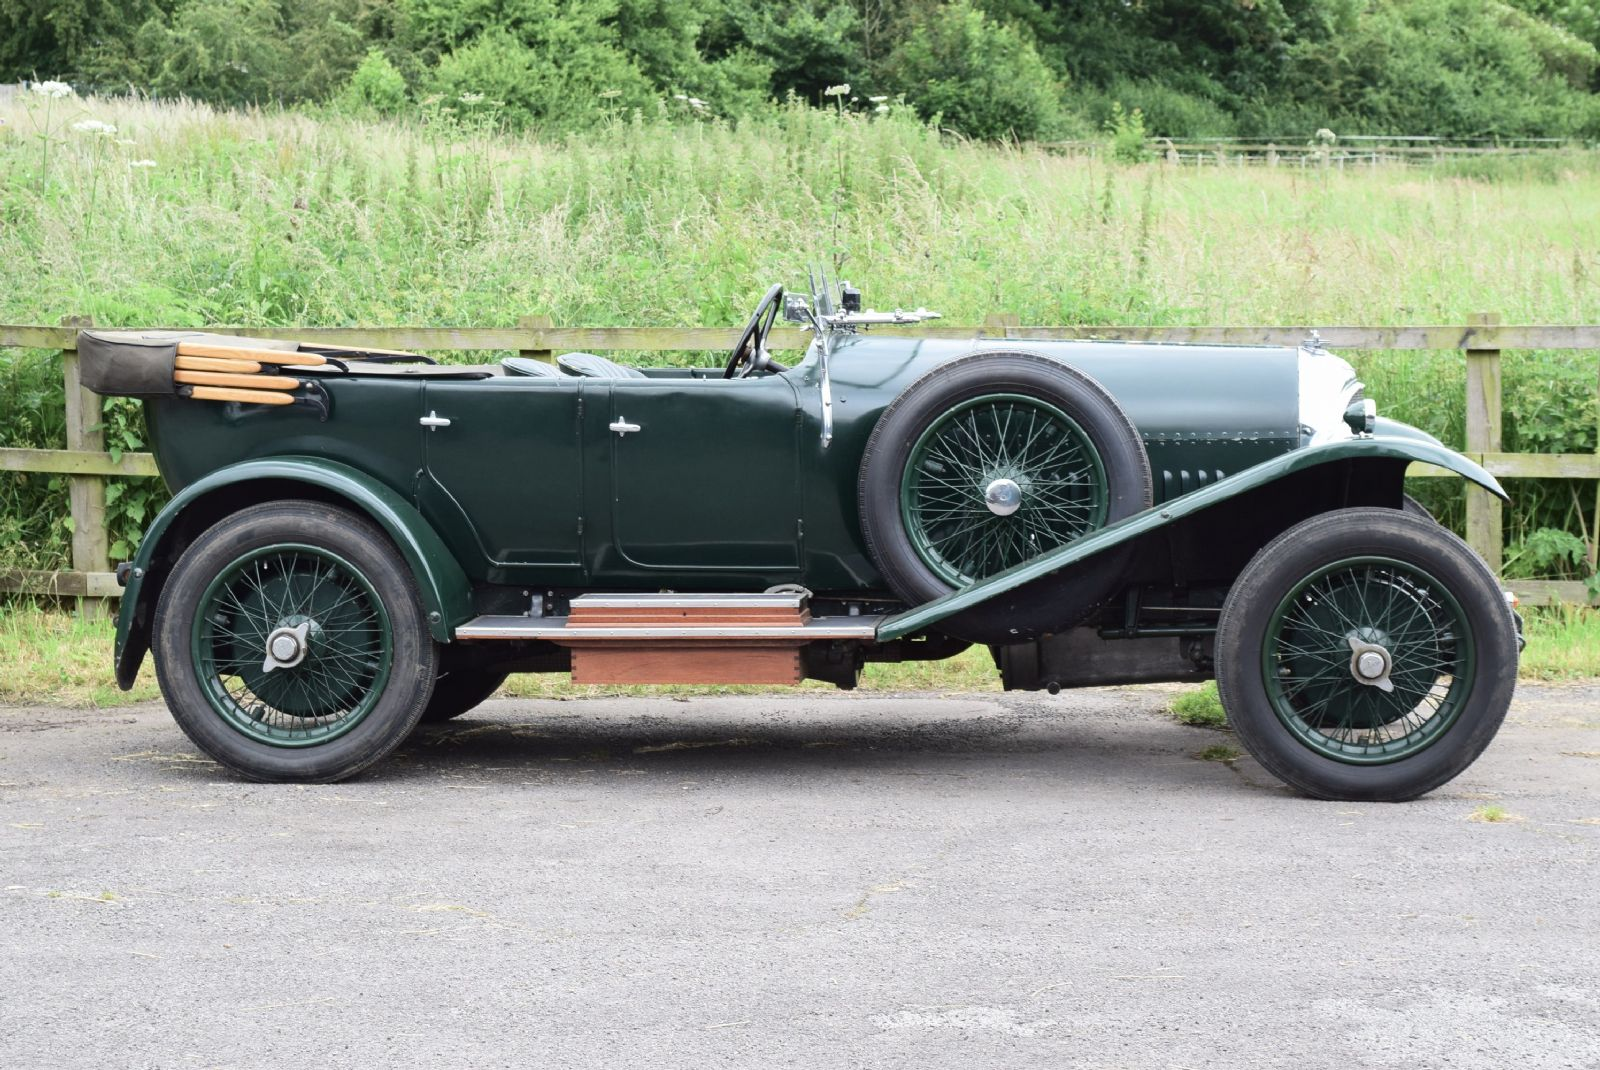 1926 Bentley 3 Litre Speed Model. Body by Park Ward. Now Sold. Vintage Bentleys wanted.